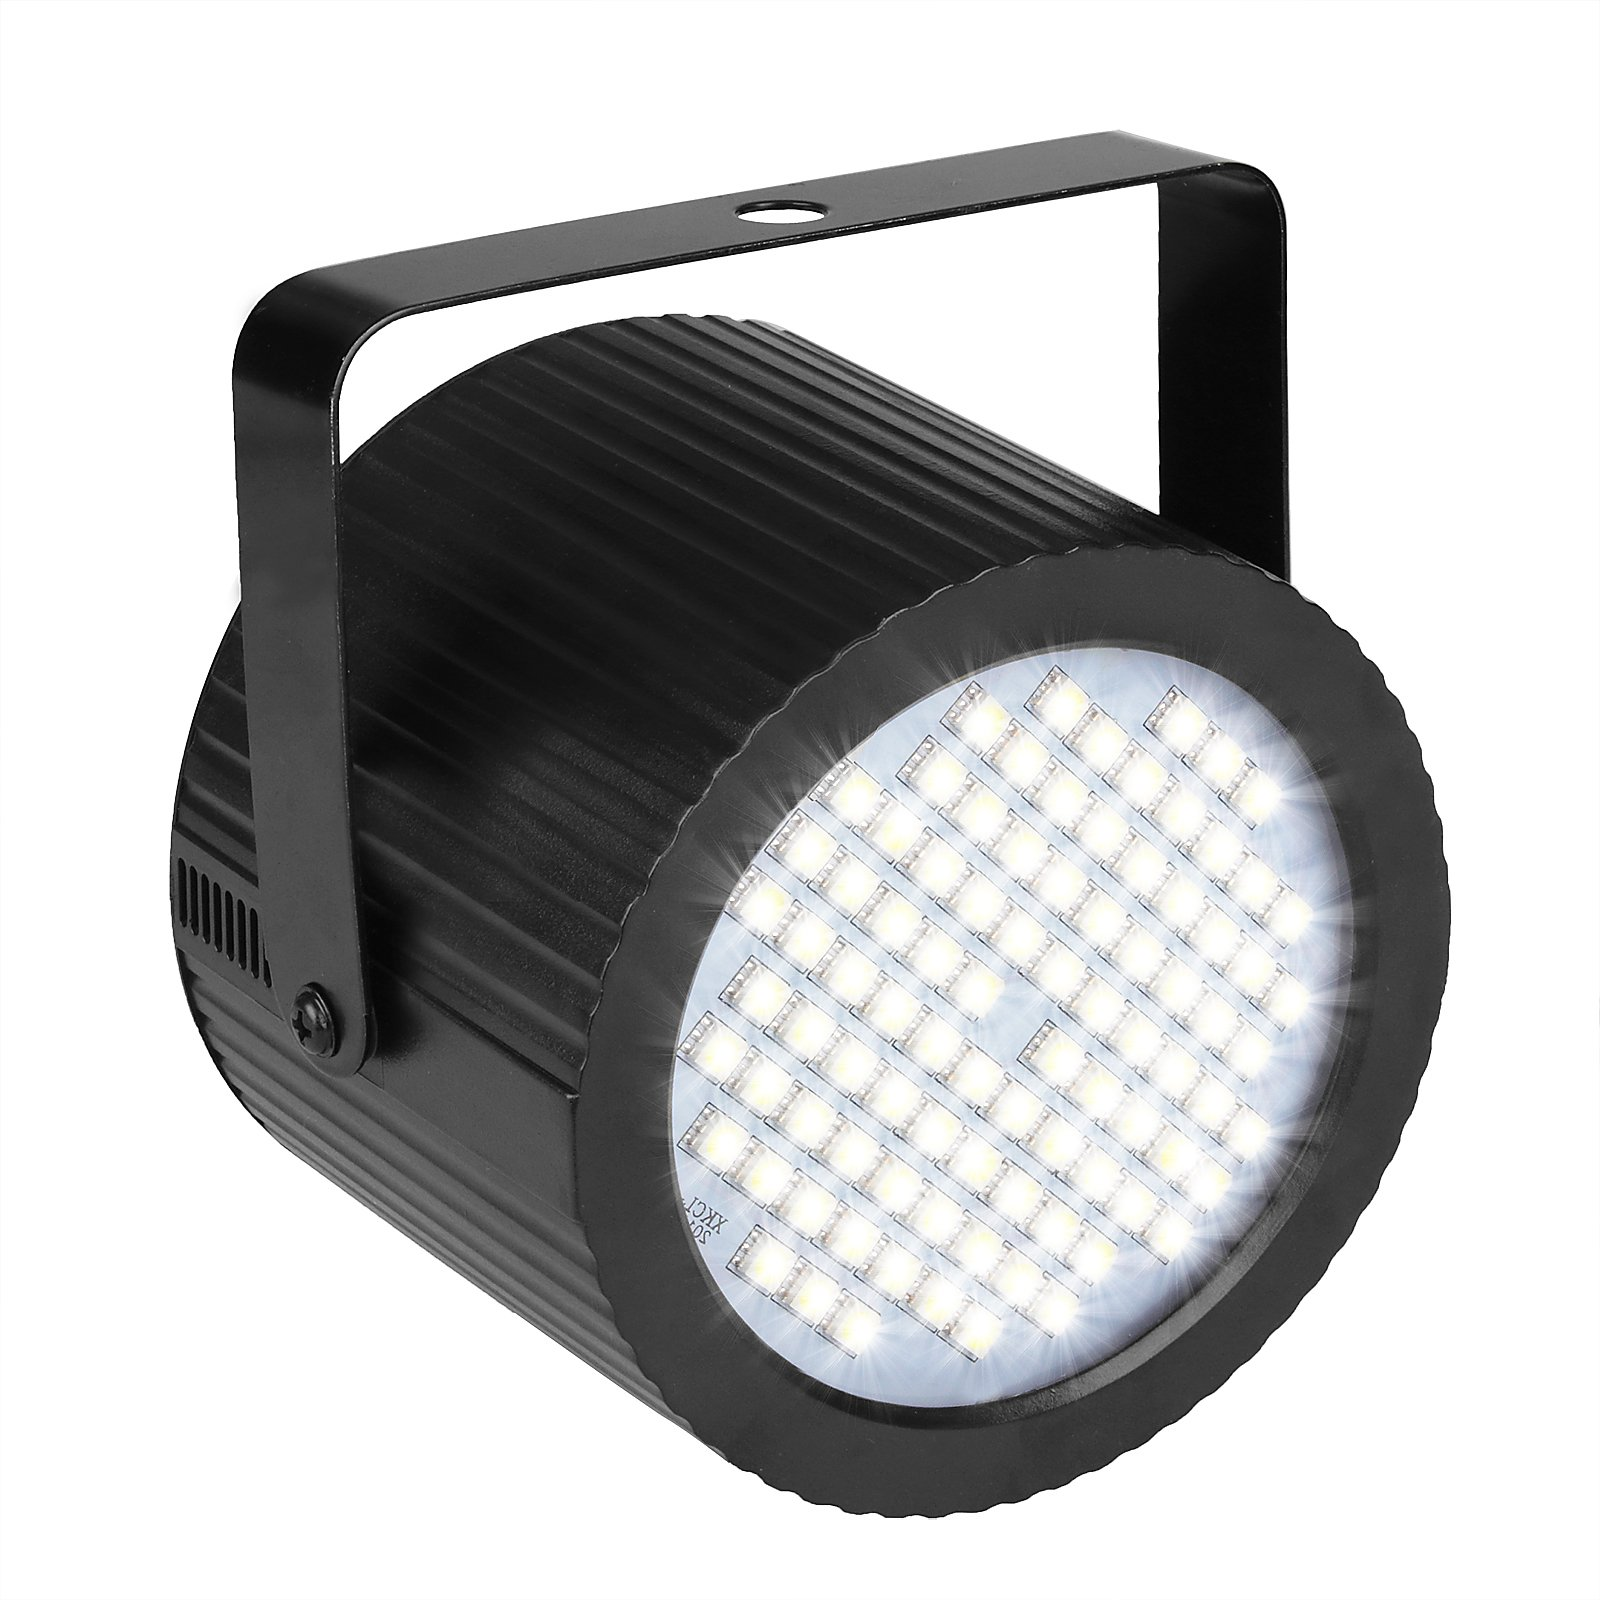 GBGS Strobe Light for Parties Sound-Activated Flash Rate Adjustable 88 White LED 20W Super Bright Can Shape Halloween Christmas Birthday Party Stage Flash Lighting by GBGS